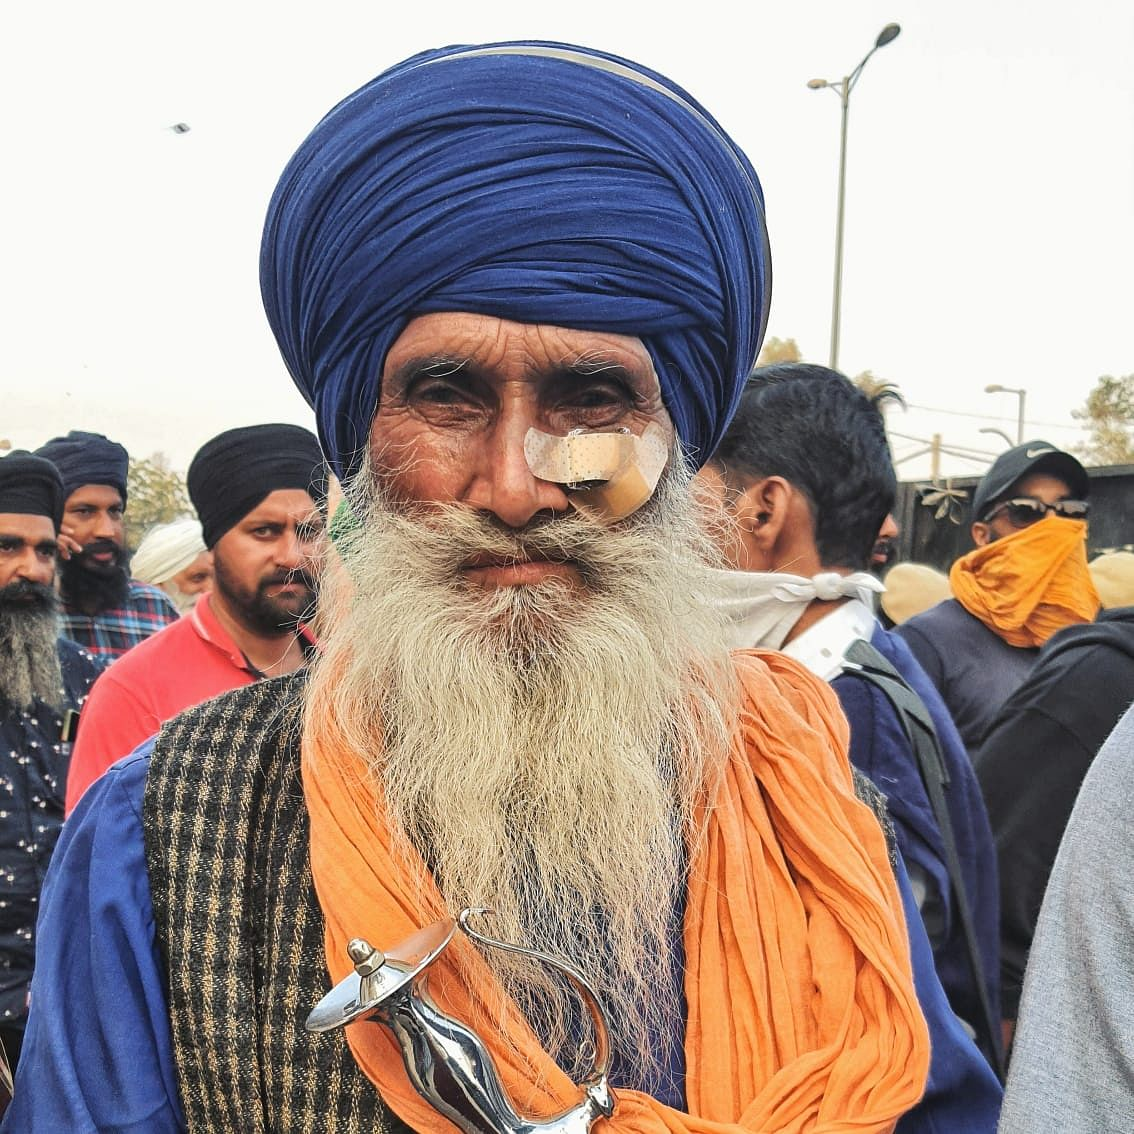 70-Yr-Old to BCom Student, Meet the People Behind Farmers' Protest